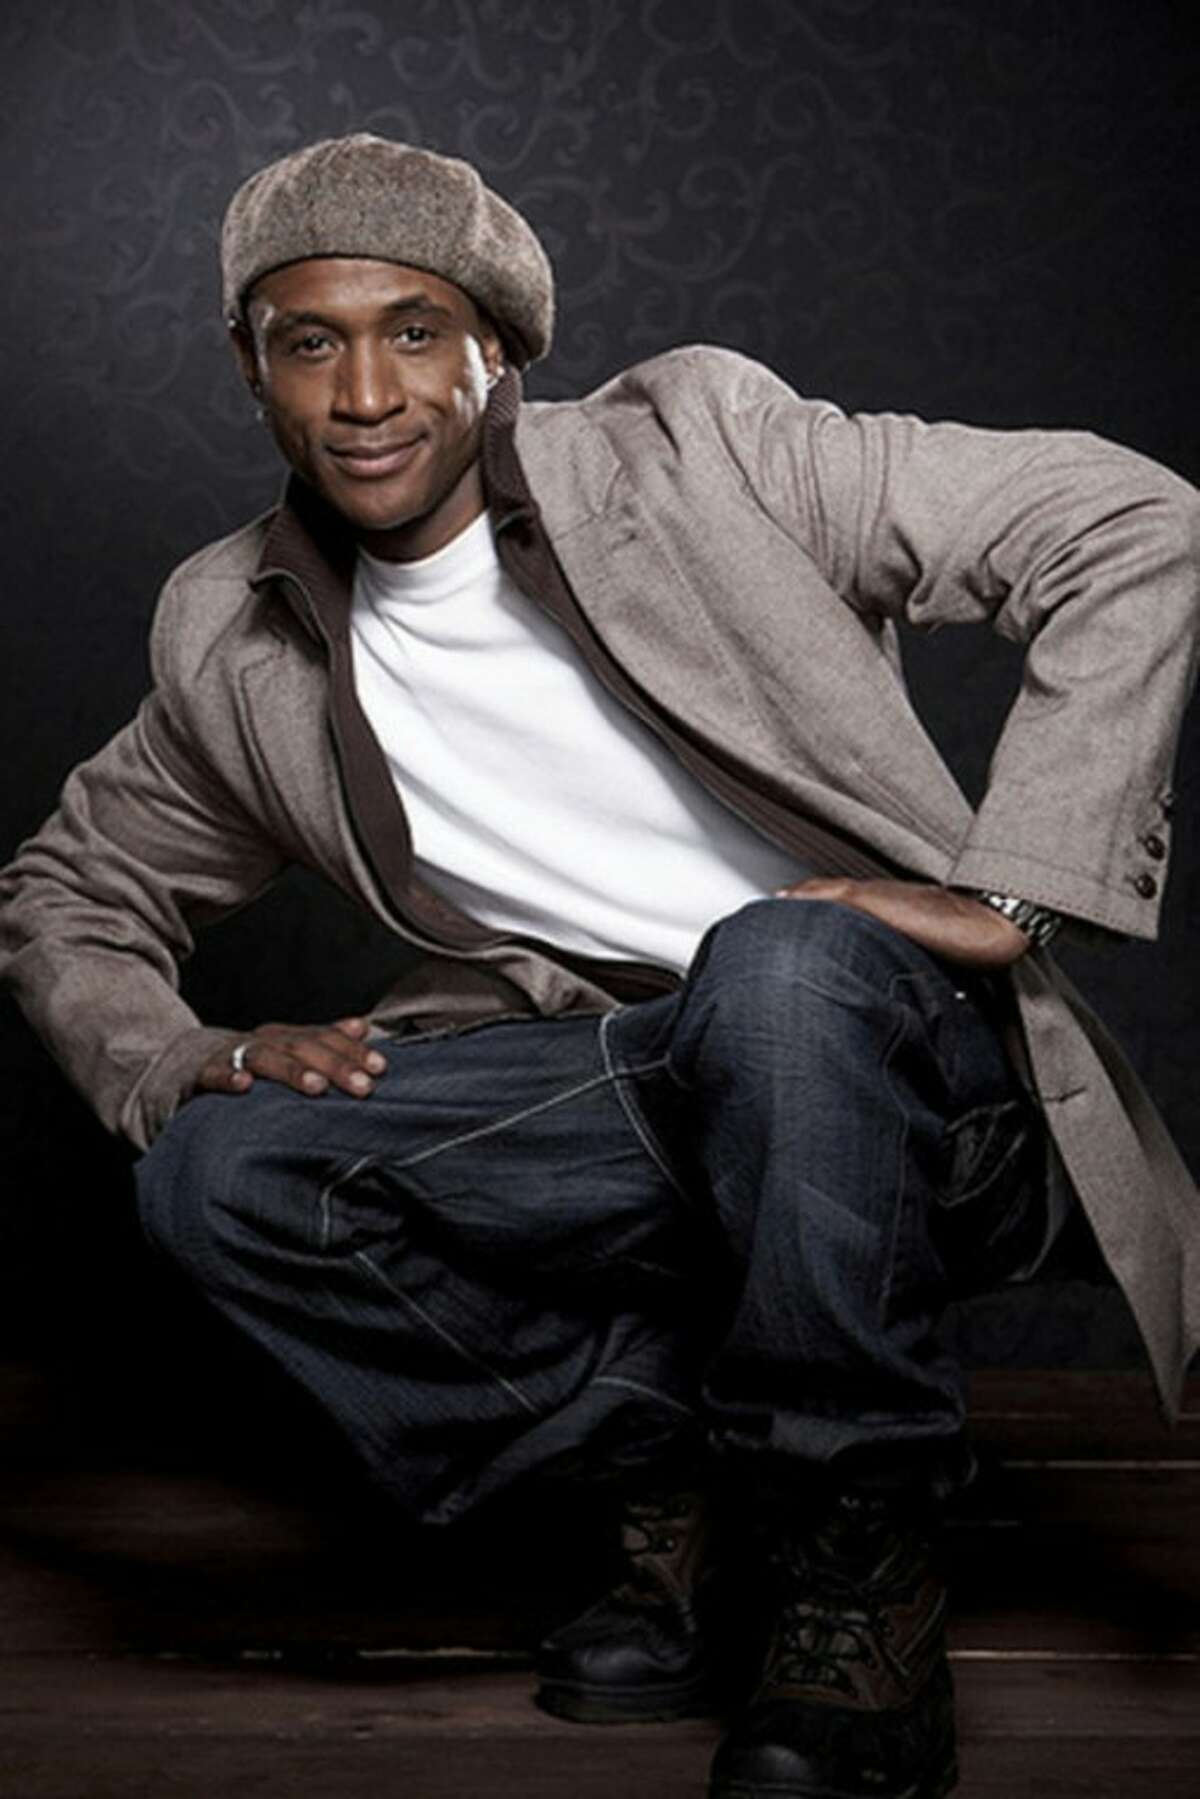 Tommy Davidson to appear at benefit